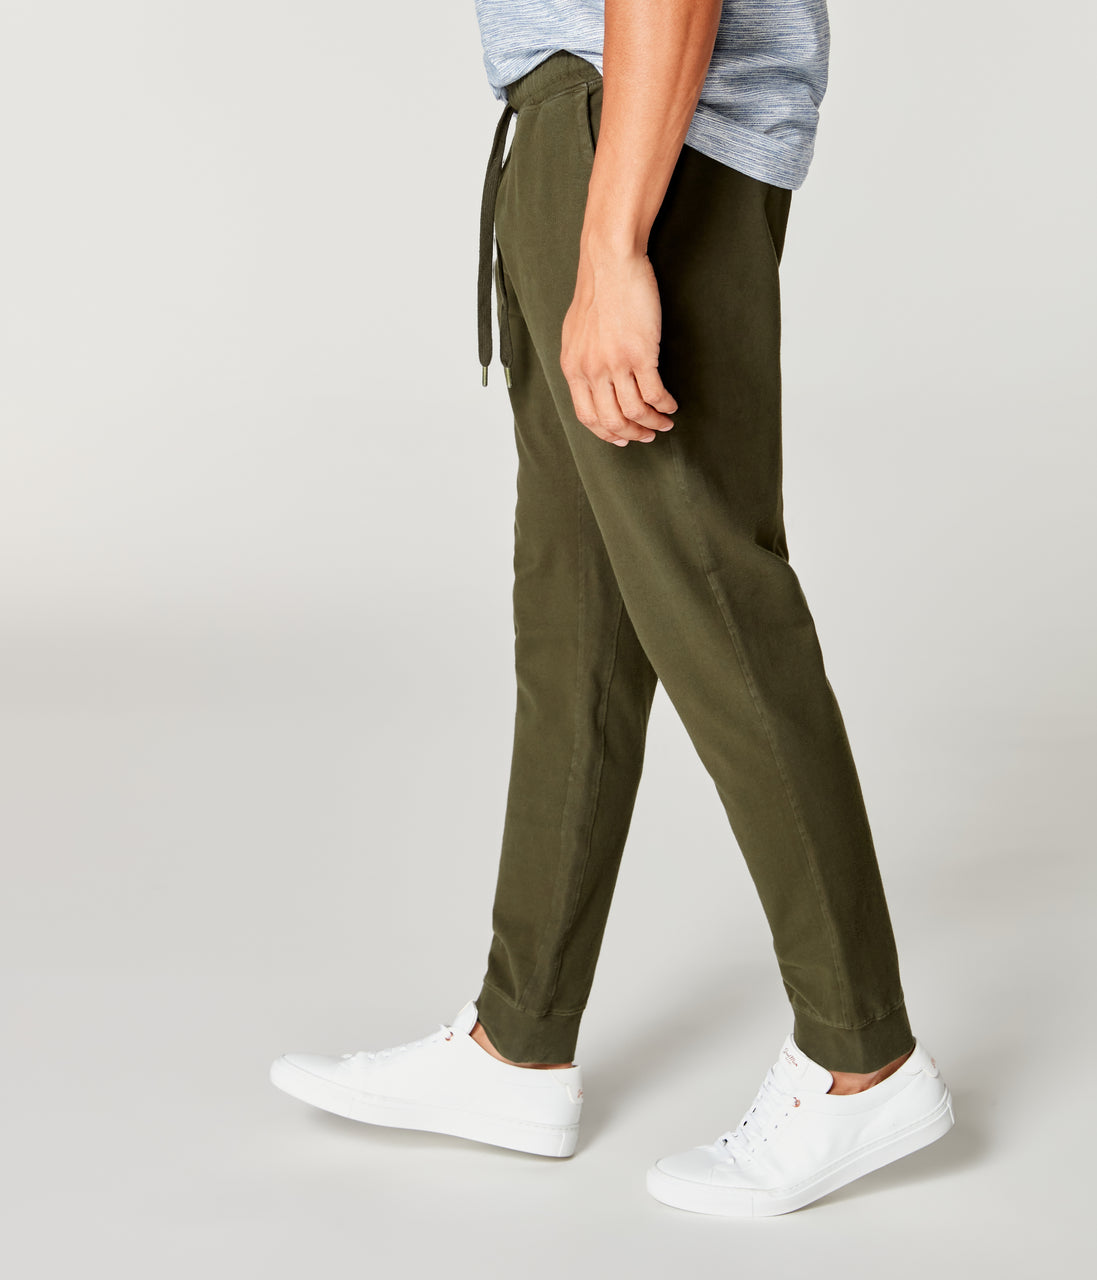 Flex Pro Jersey Jetset Jogger - Rifle Green - Good Man Brand - Flex Pro Jersey Jetset Jogger - Rifle Green